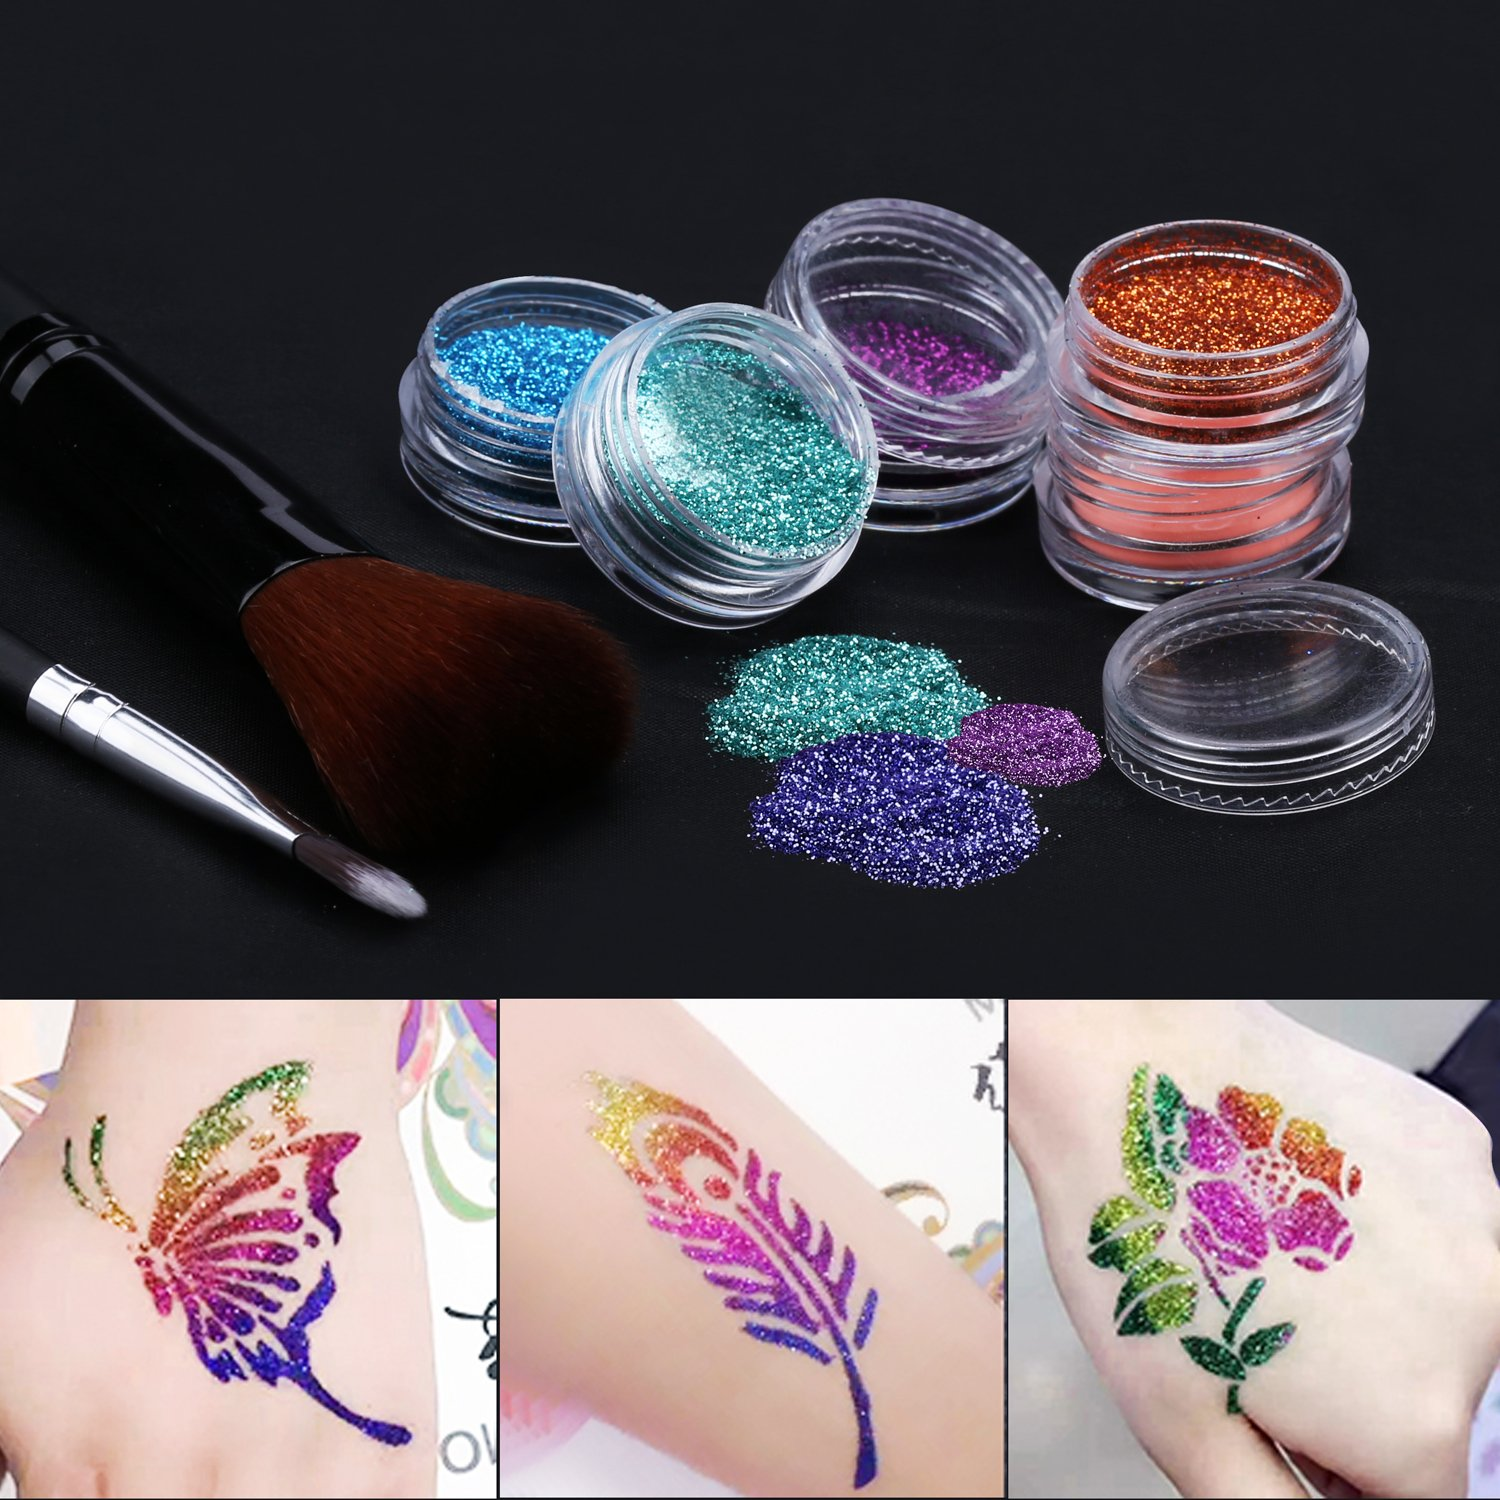 Tattoo-Kit, temporäre Glitzer Tattoo Make Up Körper Glitzer Kunst Design für Kinder Teenager Erwachsene, mit 24 Farben der Glitzer und 6 Leuchtstoffe, 118 Blatt Einzigartig Themed Tattoo Schablone